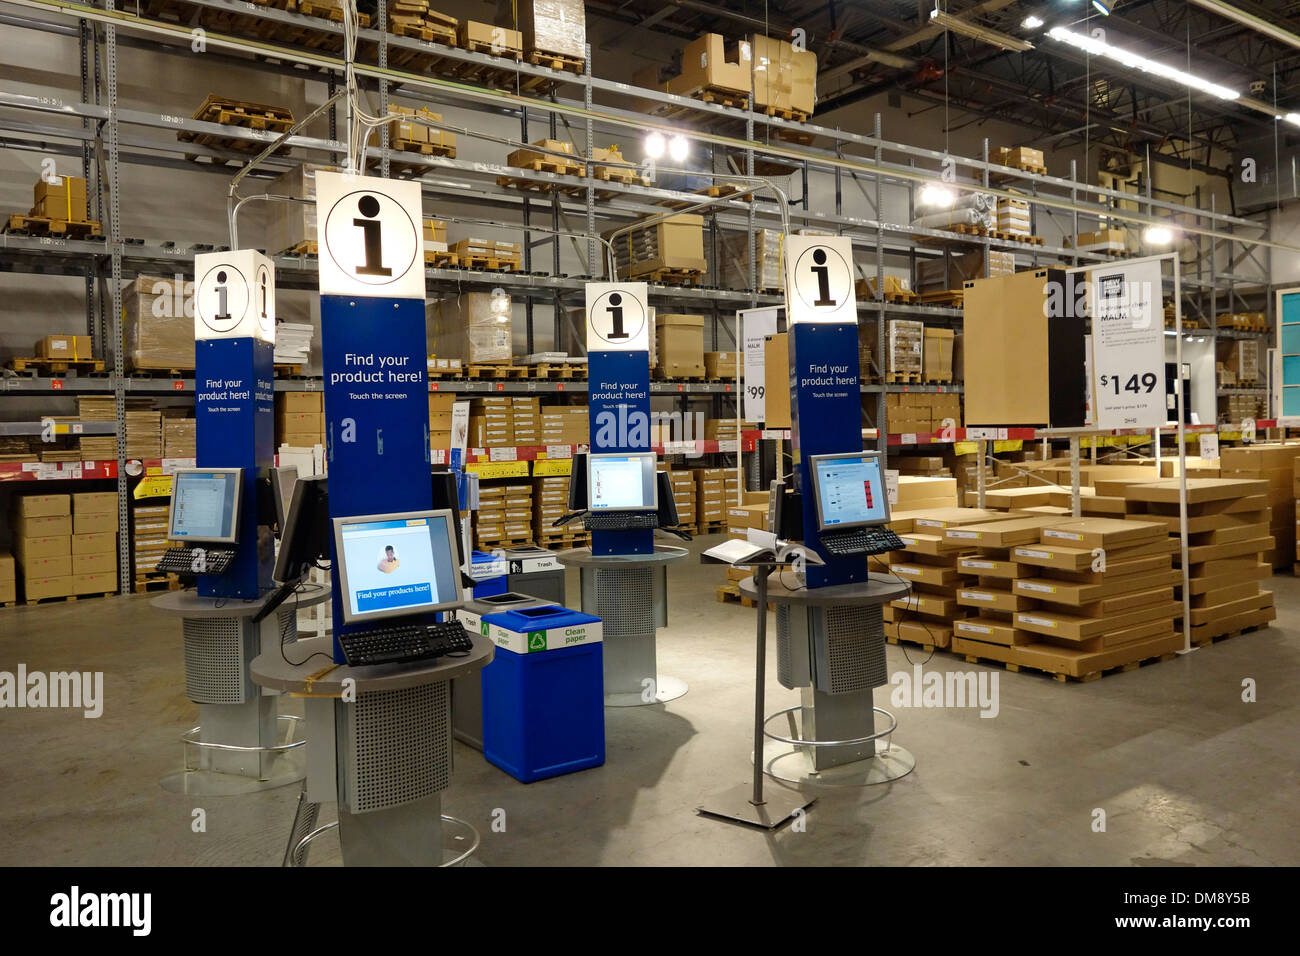 Ikea store warehouse stock photo 64121159 alamy for Ikea store online shopping